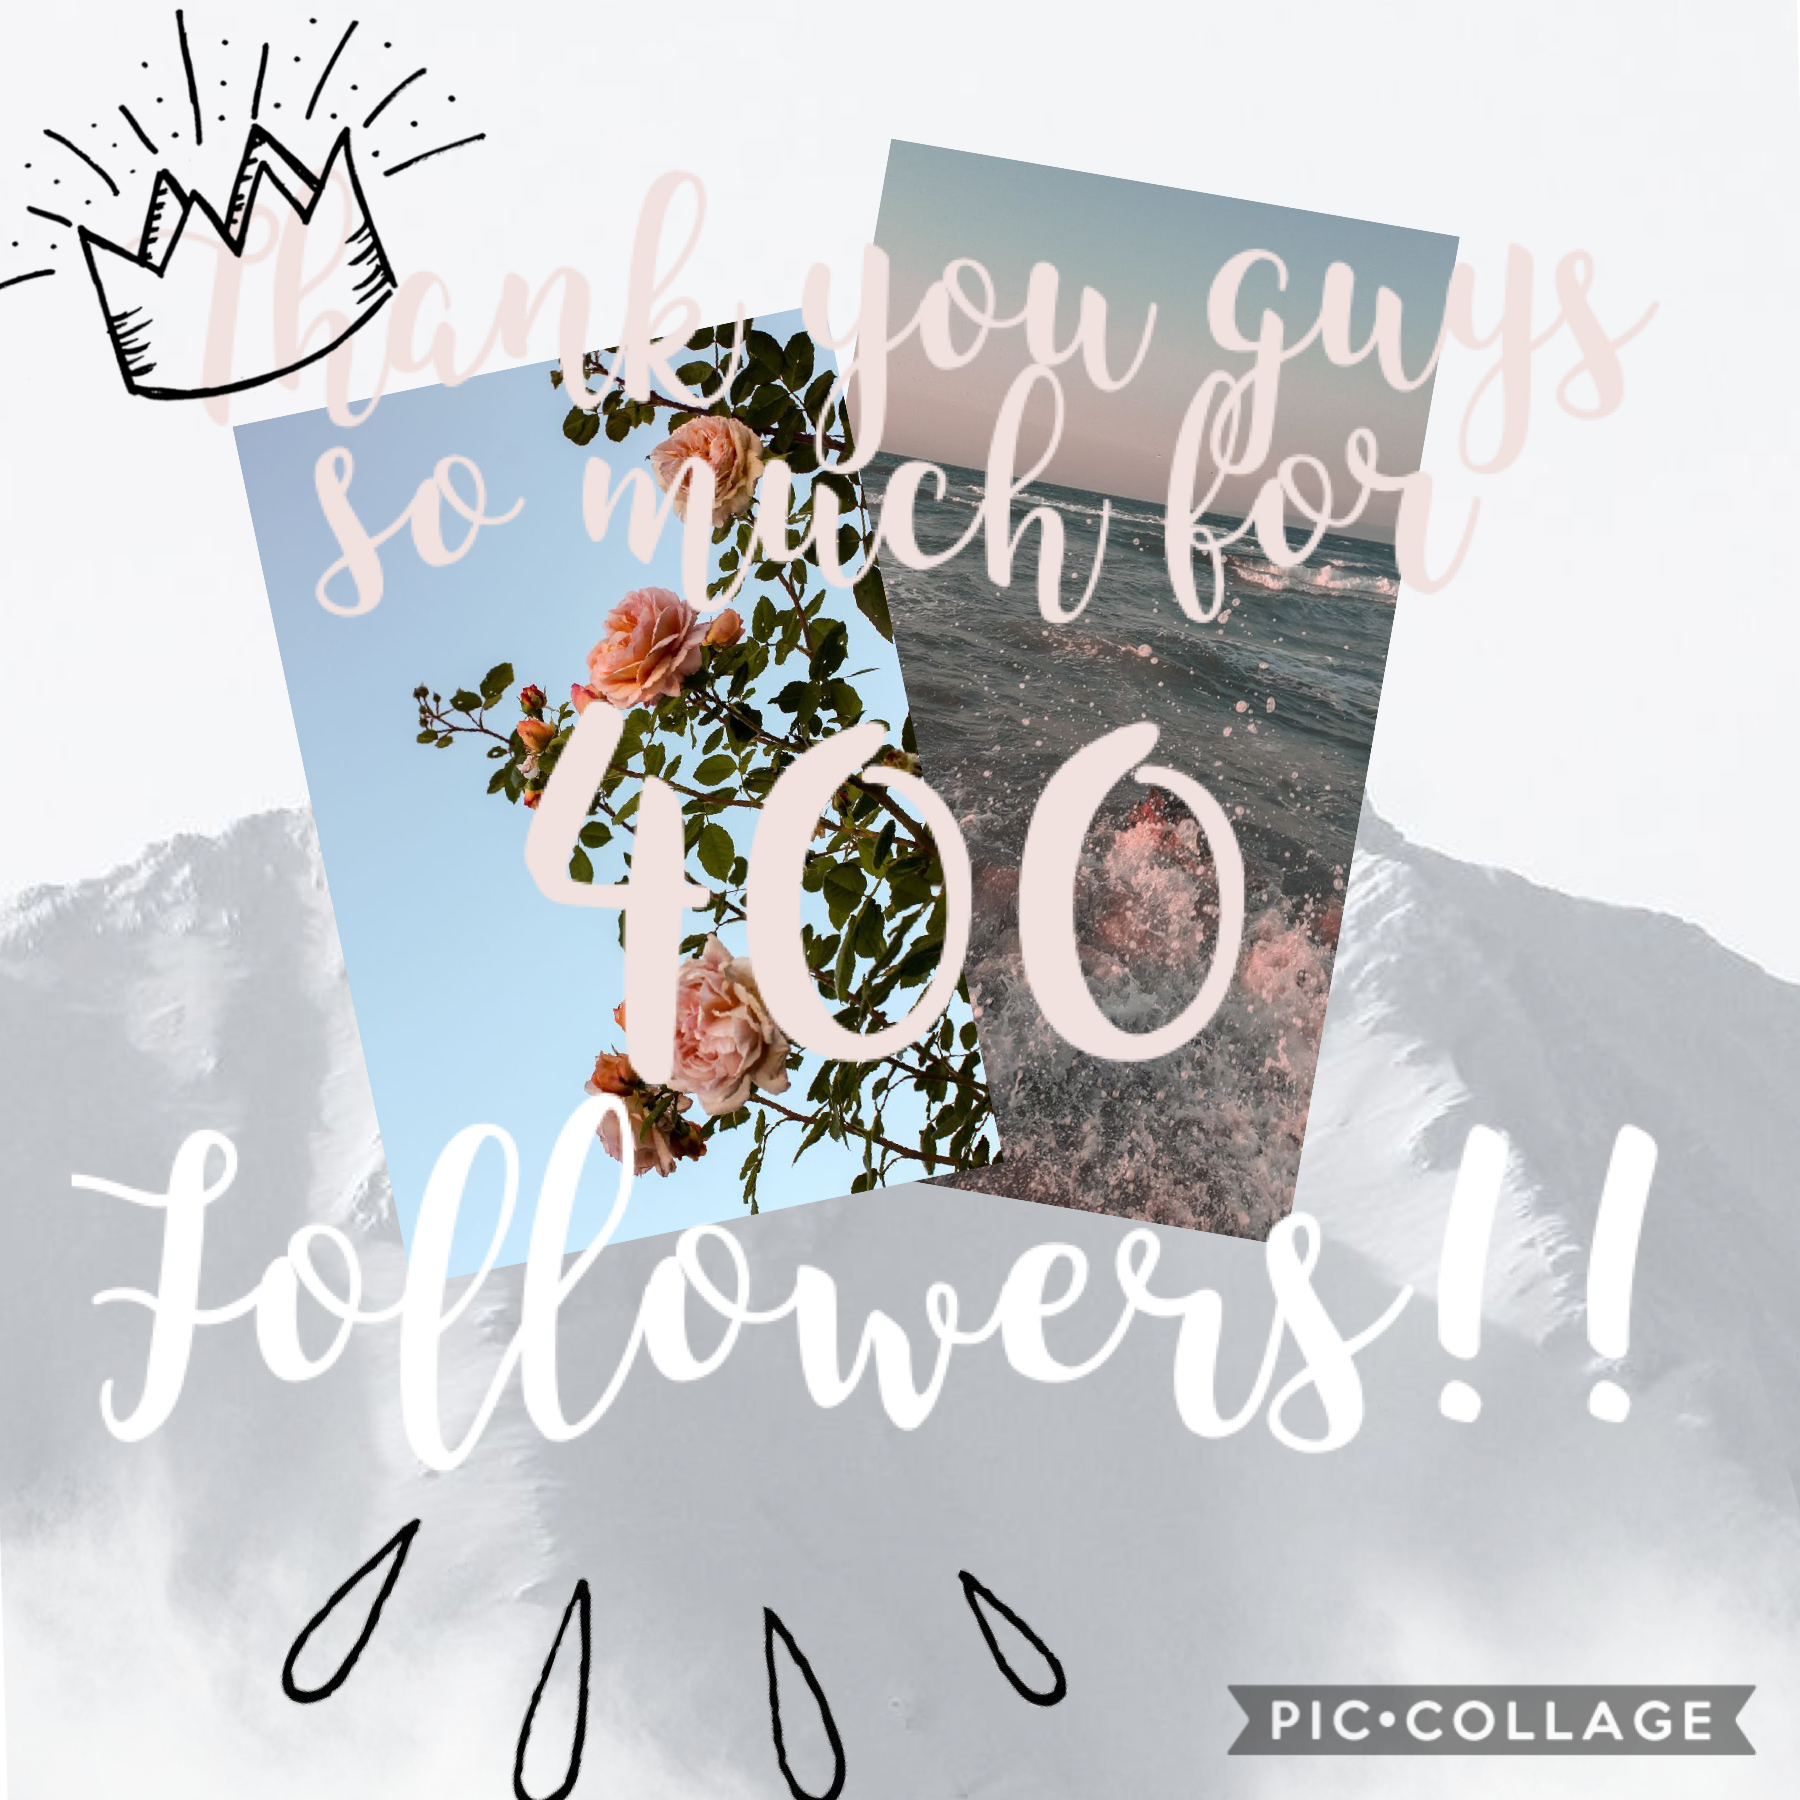 Tsym guys for 400 followers!! I couldn't of done it without you!! (Obviously) lol thank you!! ❤️ ❤️